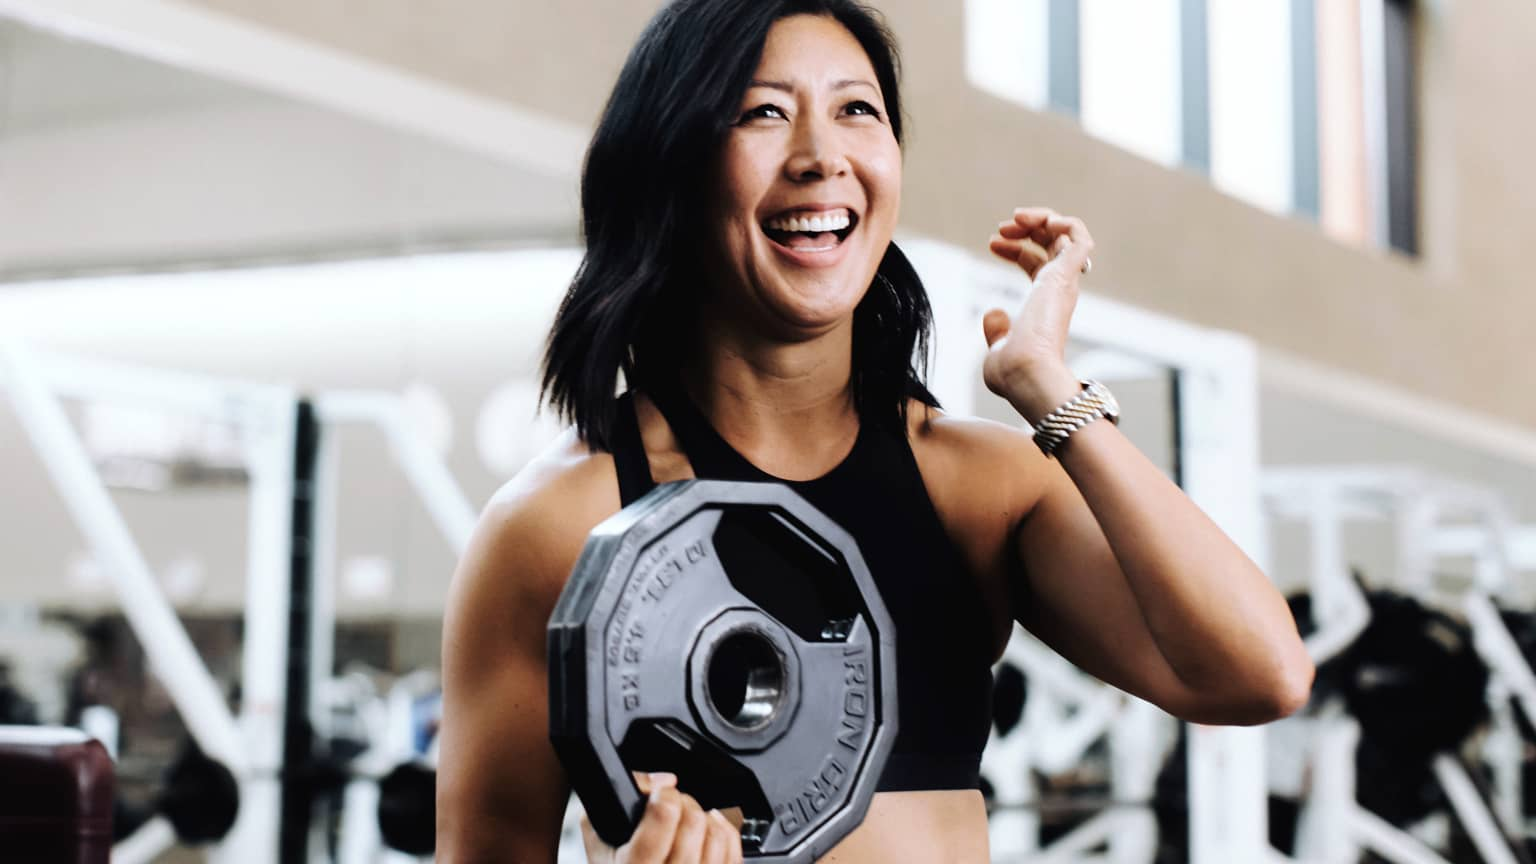 A smiling woman in workout clothes stands in front of a row of fitness equipment holding a weight plate